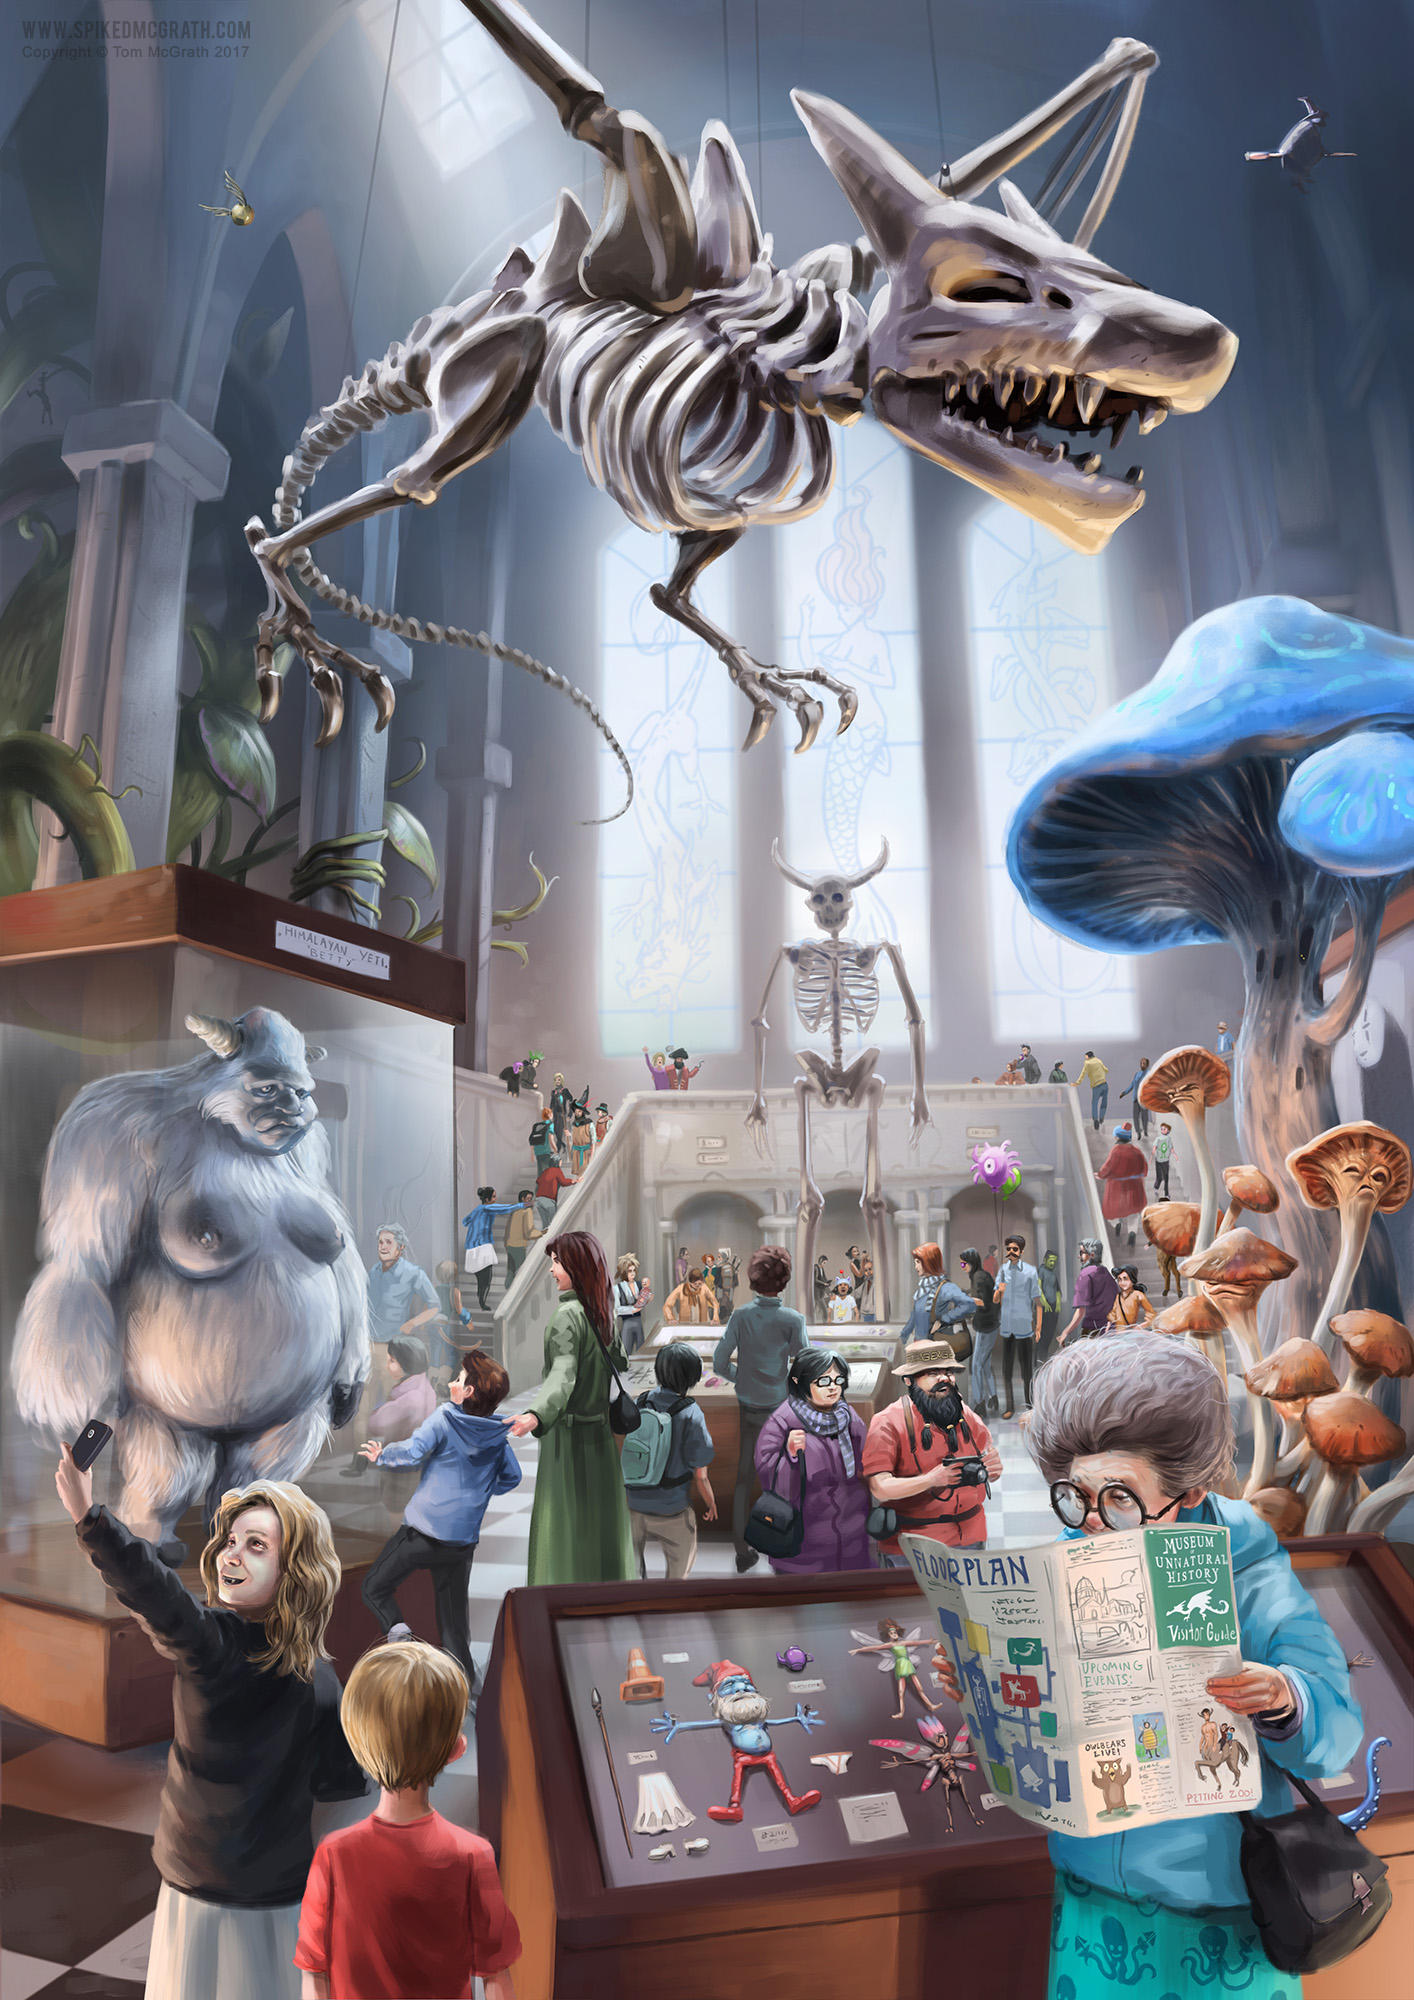 The Museum of Unnatural History by SpikedMcGrath